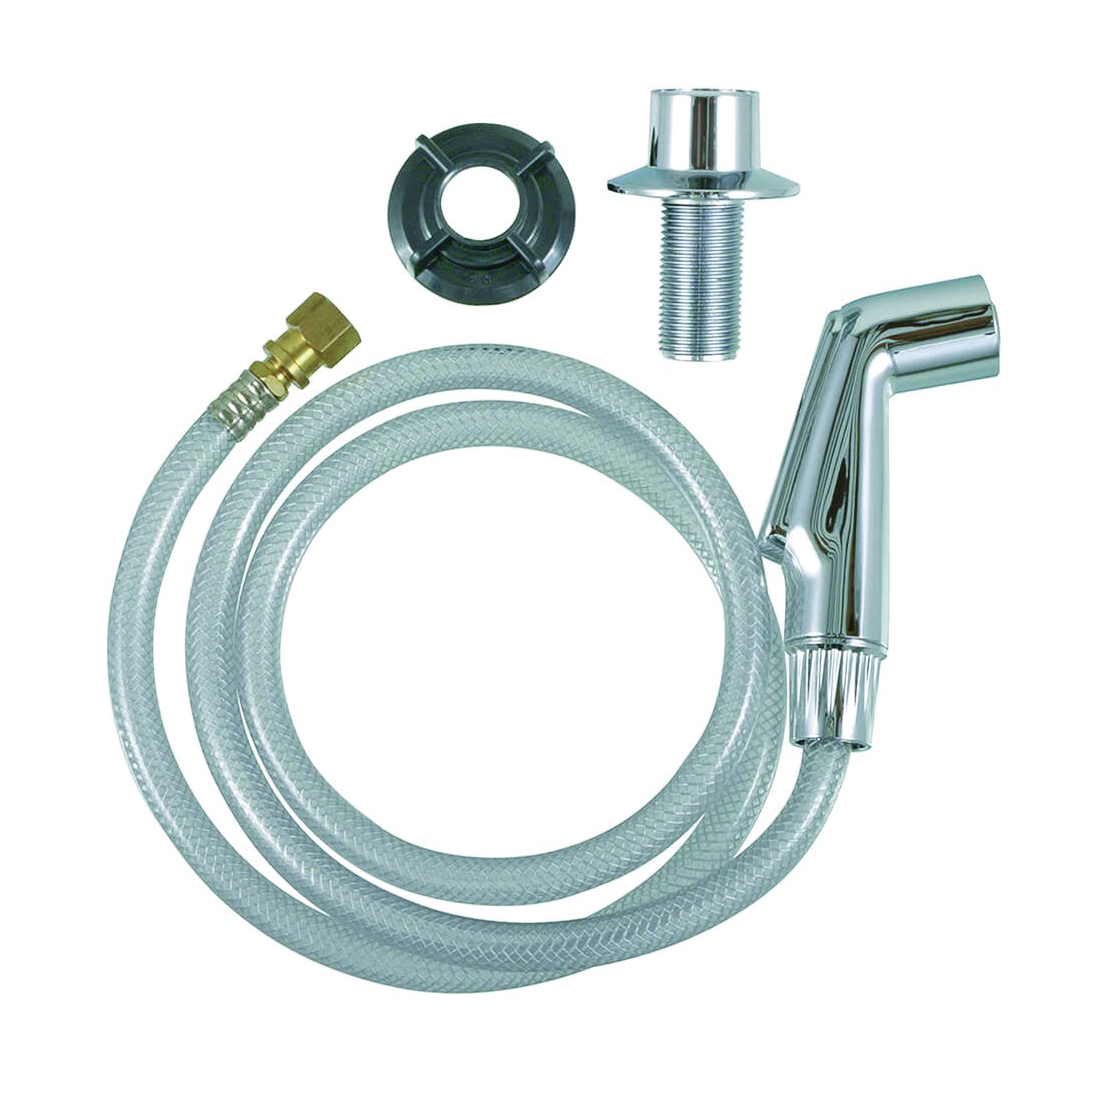 Picture of Danco 88814 Spray Hose and Head Assembly, 1/4 in Connection, FIP, Plastic